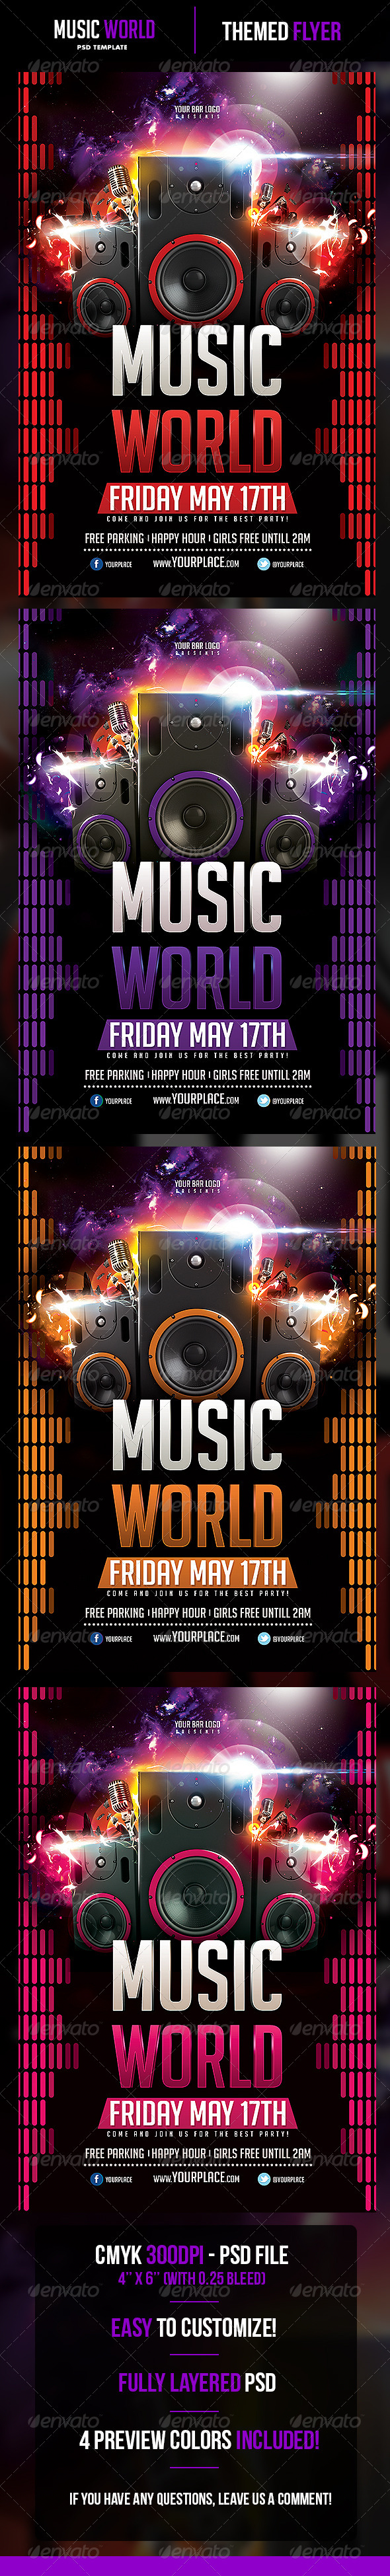 Music World Flyer Template - Clubs & Parties Events